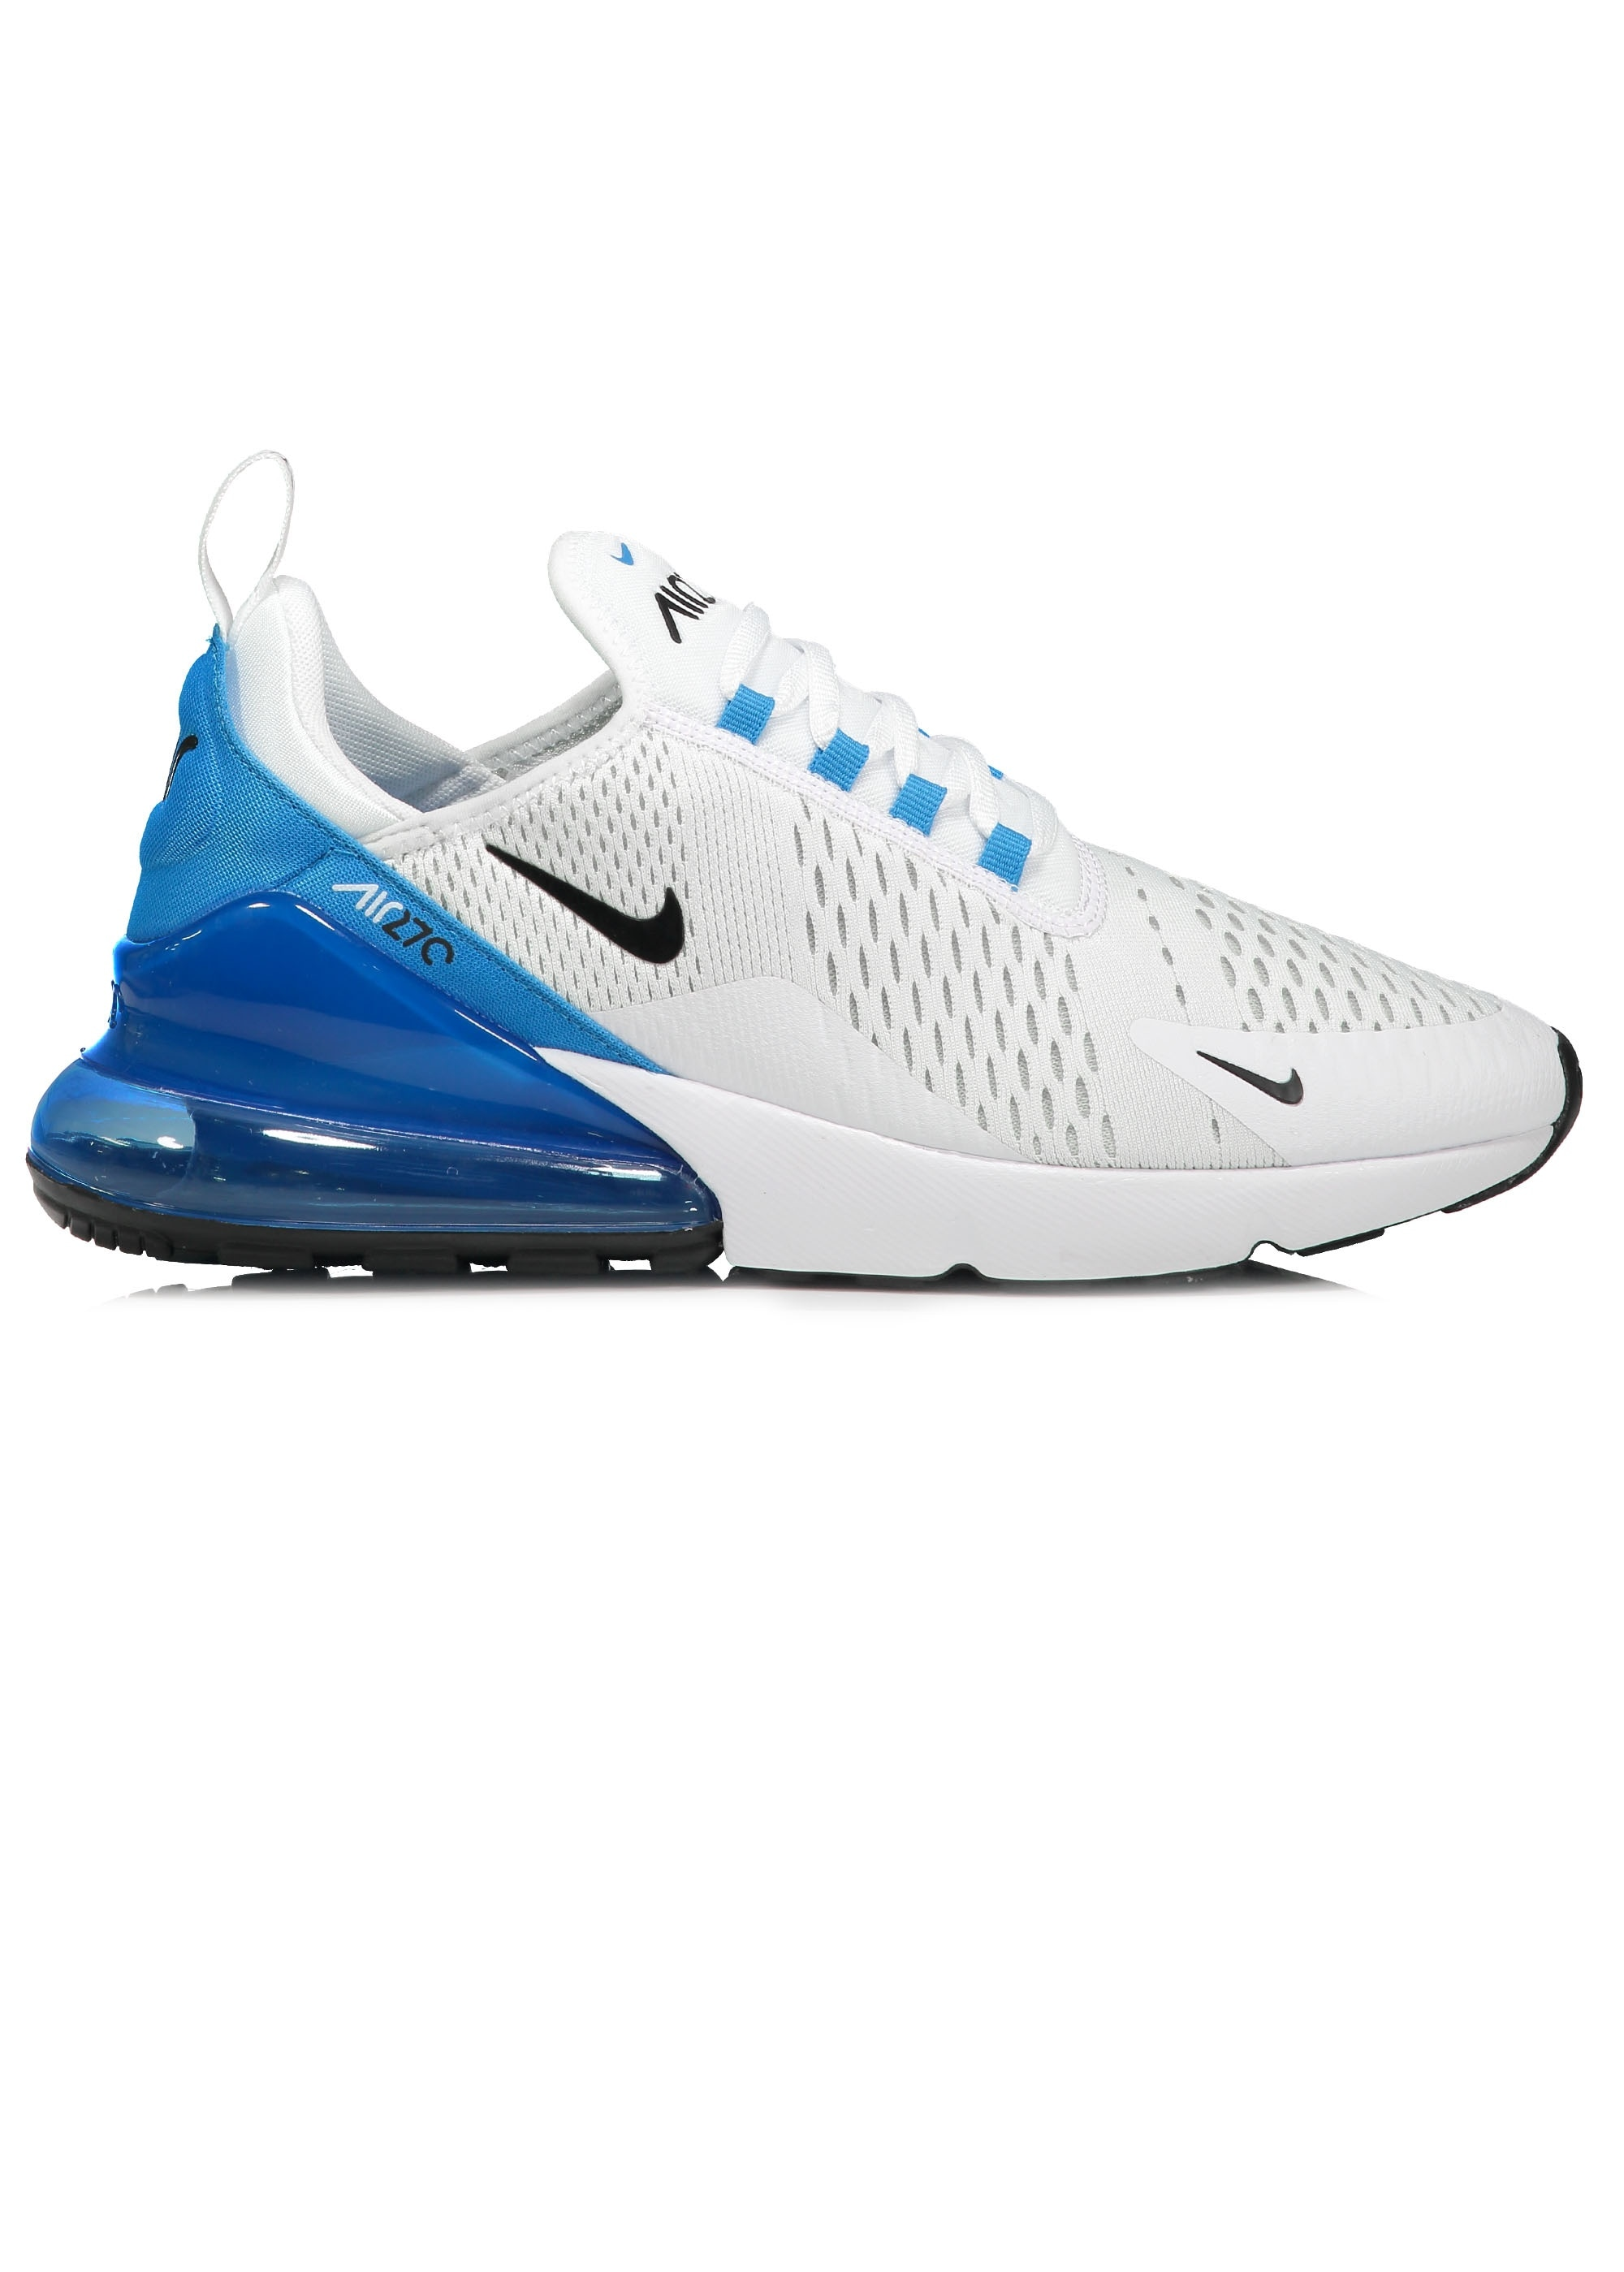 online store 3c8d4 4f355 Nike Footwear Air Max 270 - White / Blue